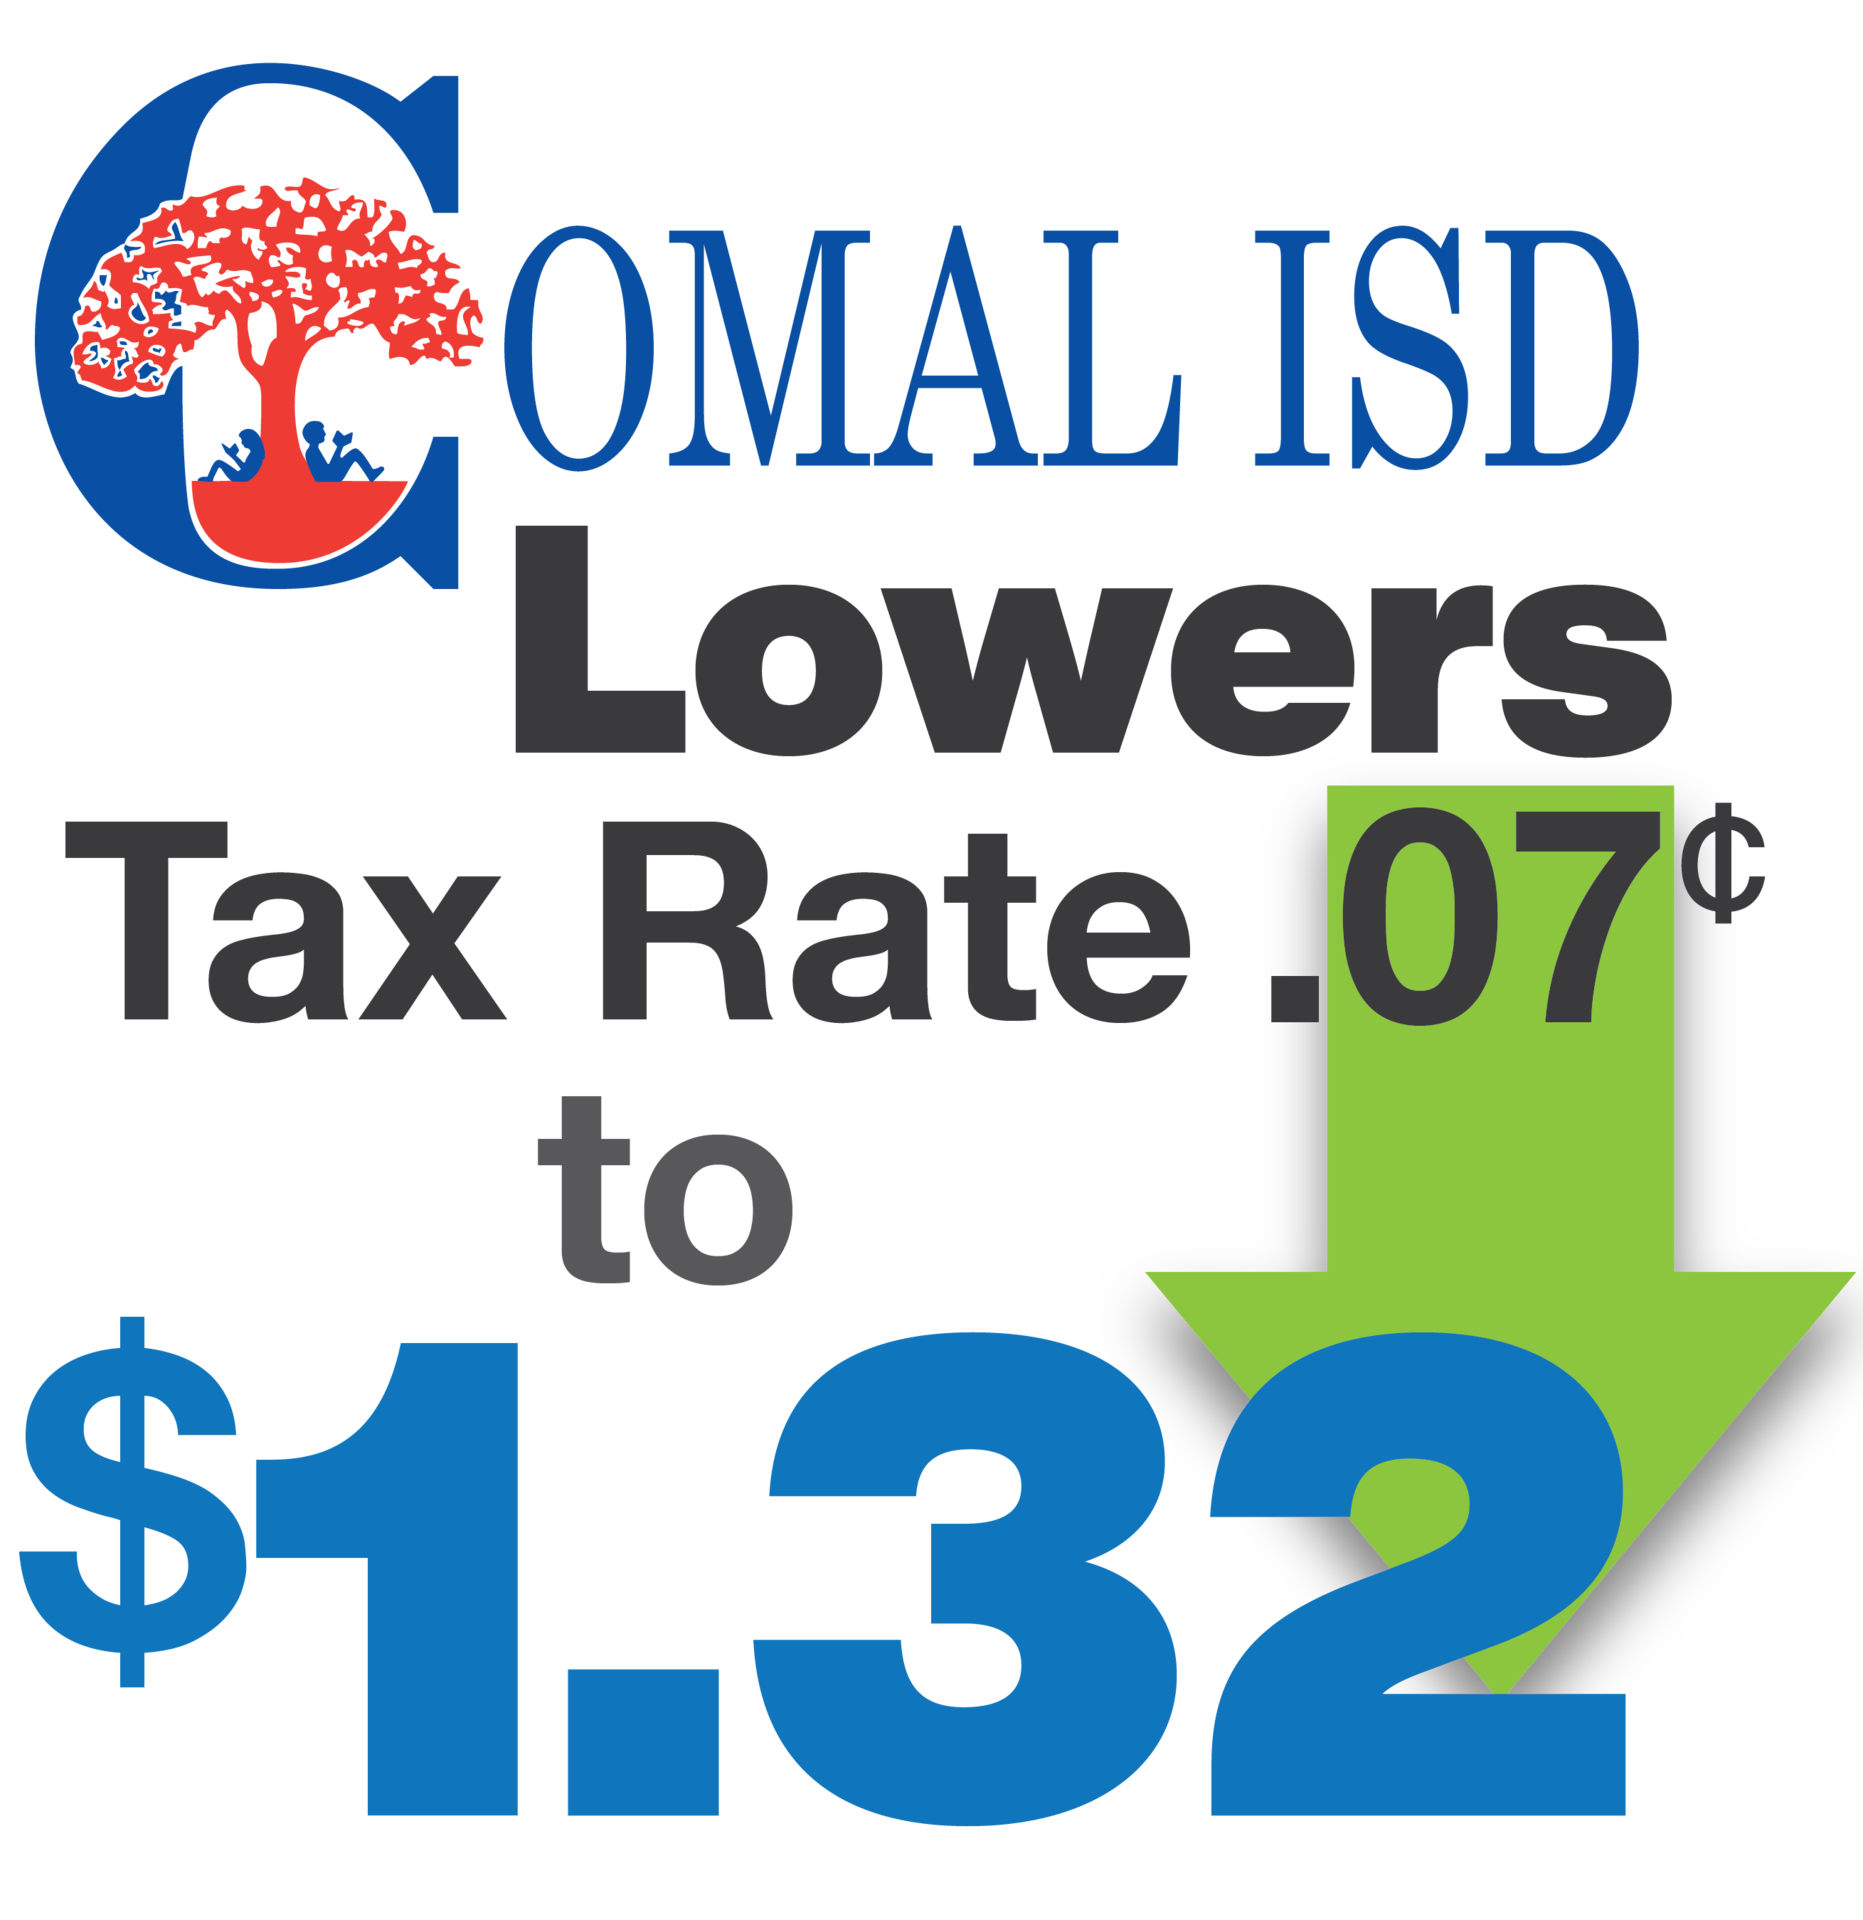 Image of tax rate lowering by $0.07 to $1.32